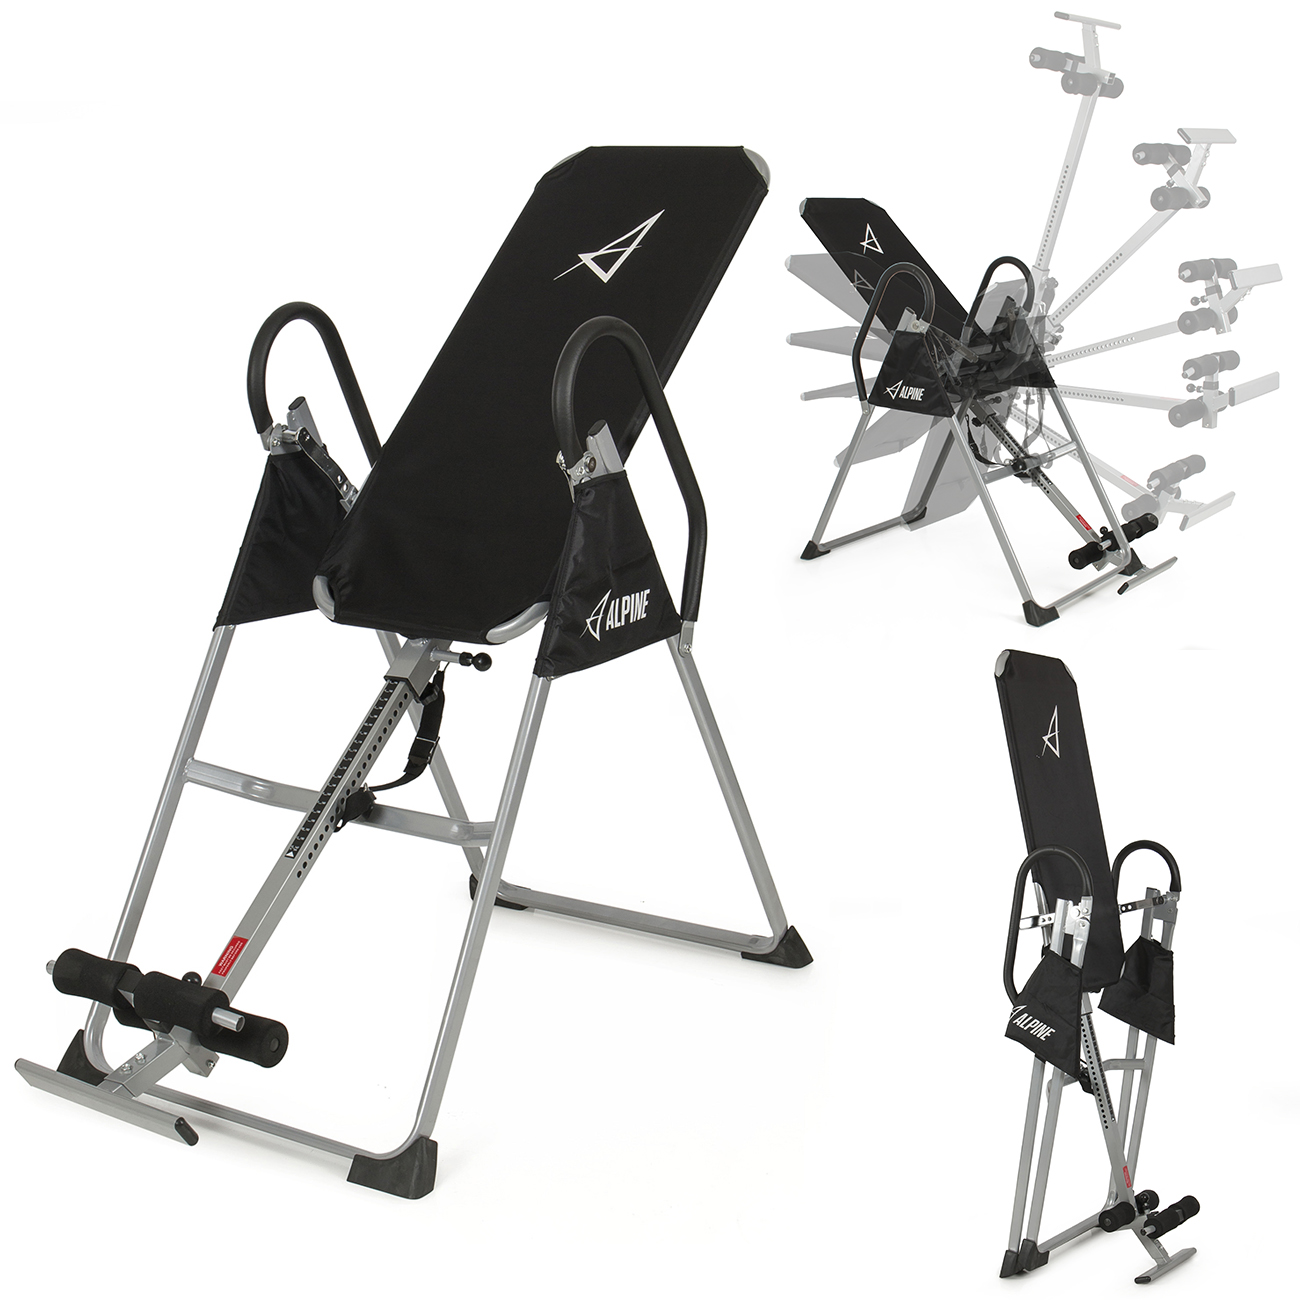 Akonza Inversion Table Deluxe Fitness Chiropractic Back Pain Relief  Exercise Gravity, (Black)   Walmart.com